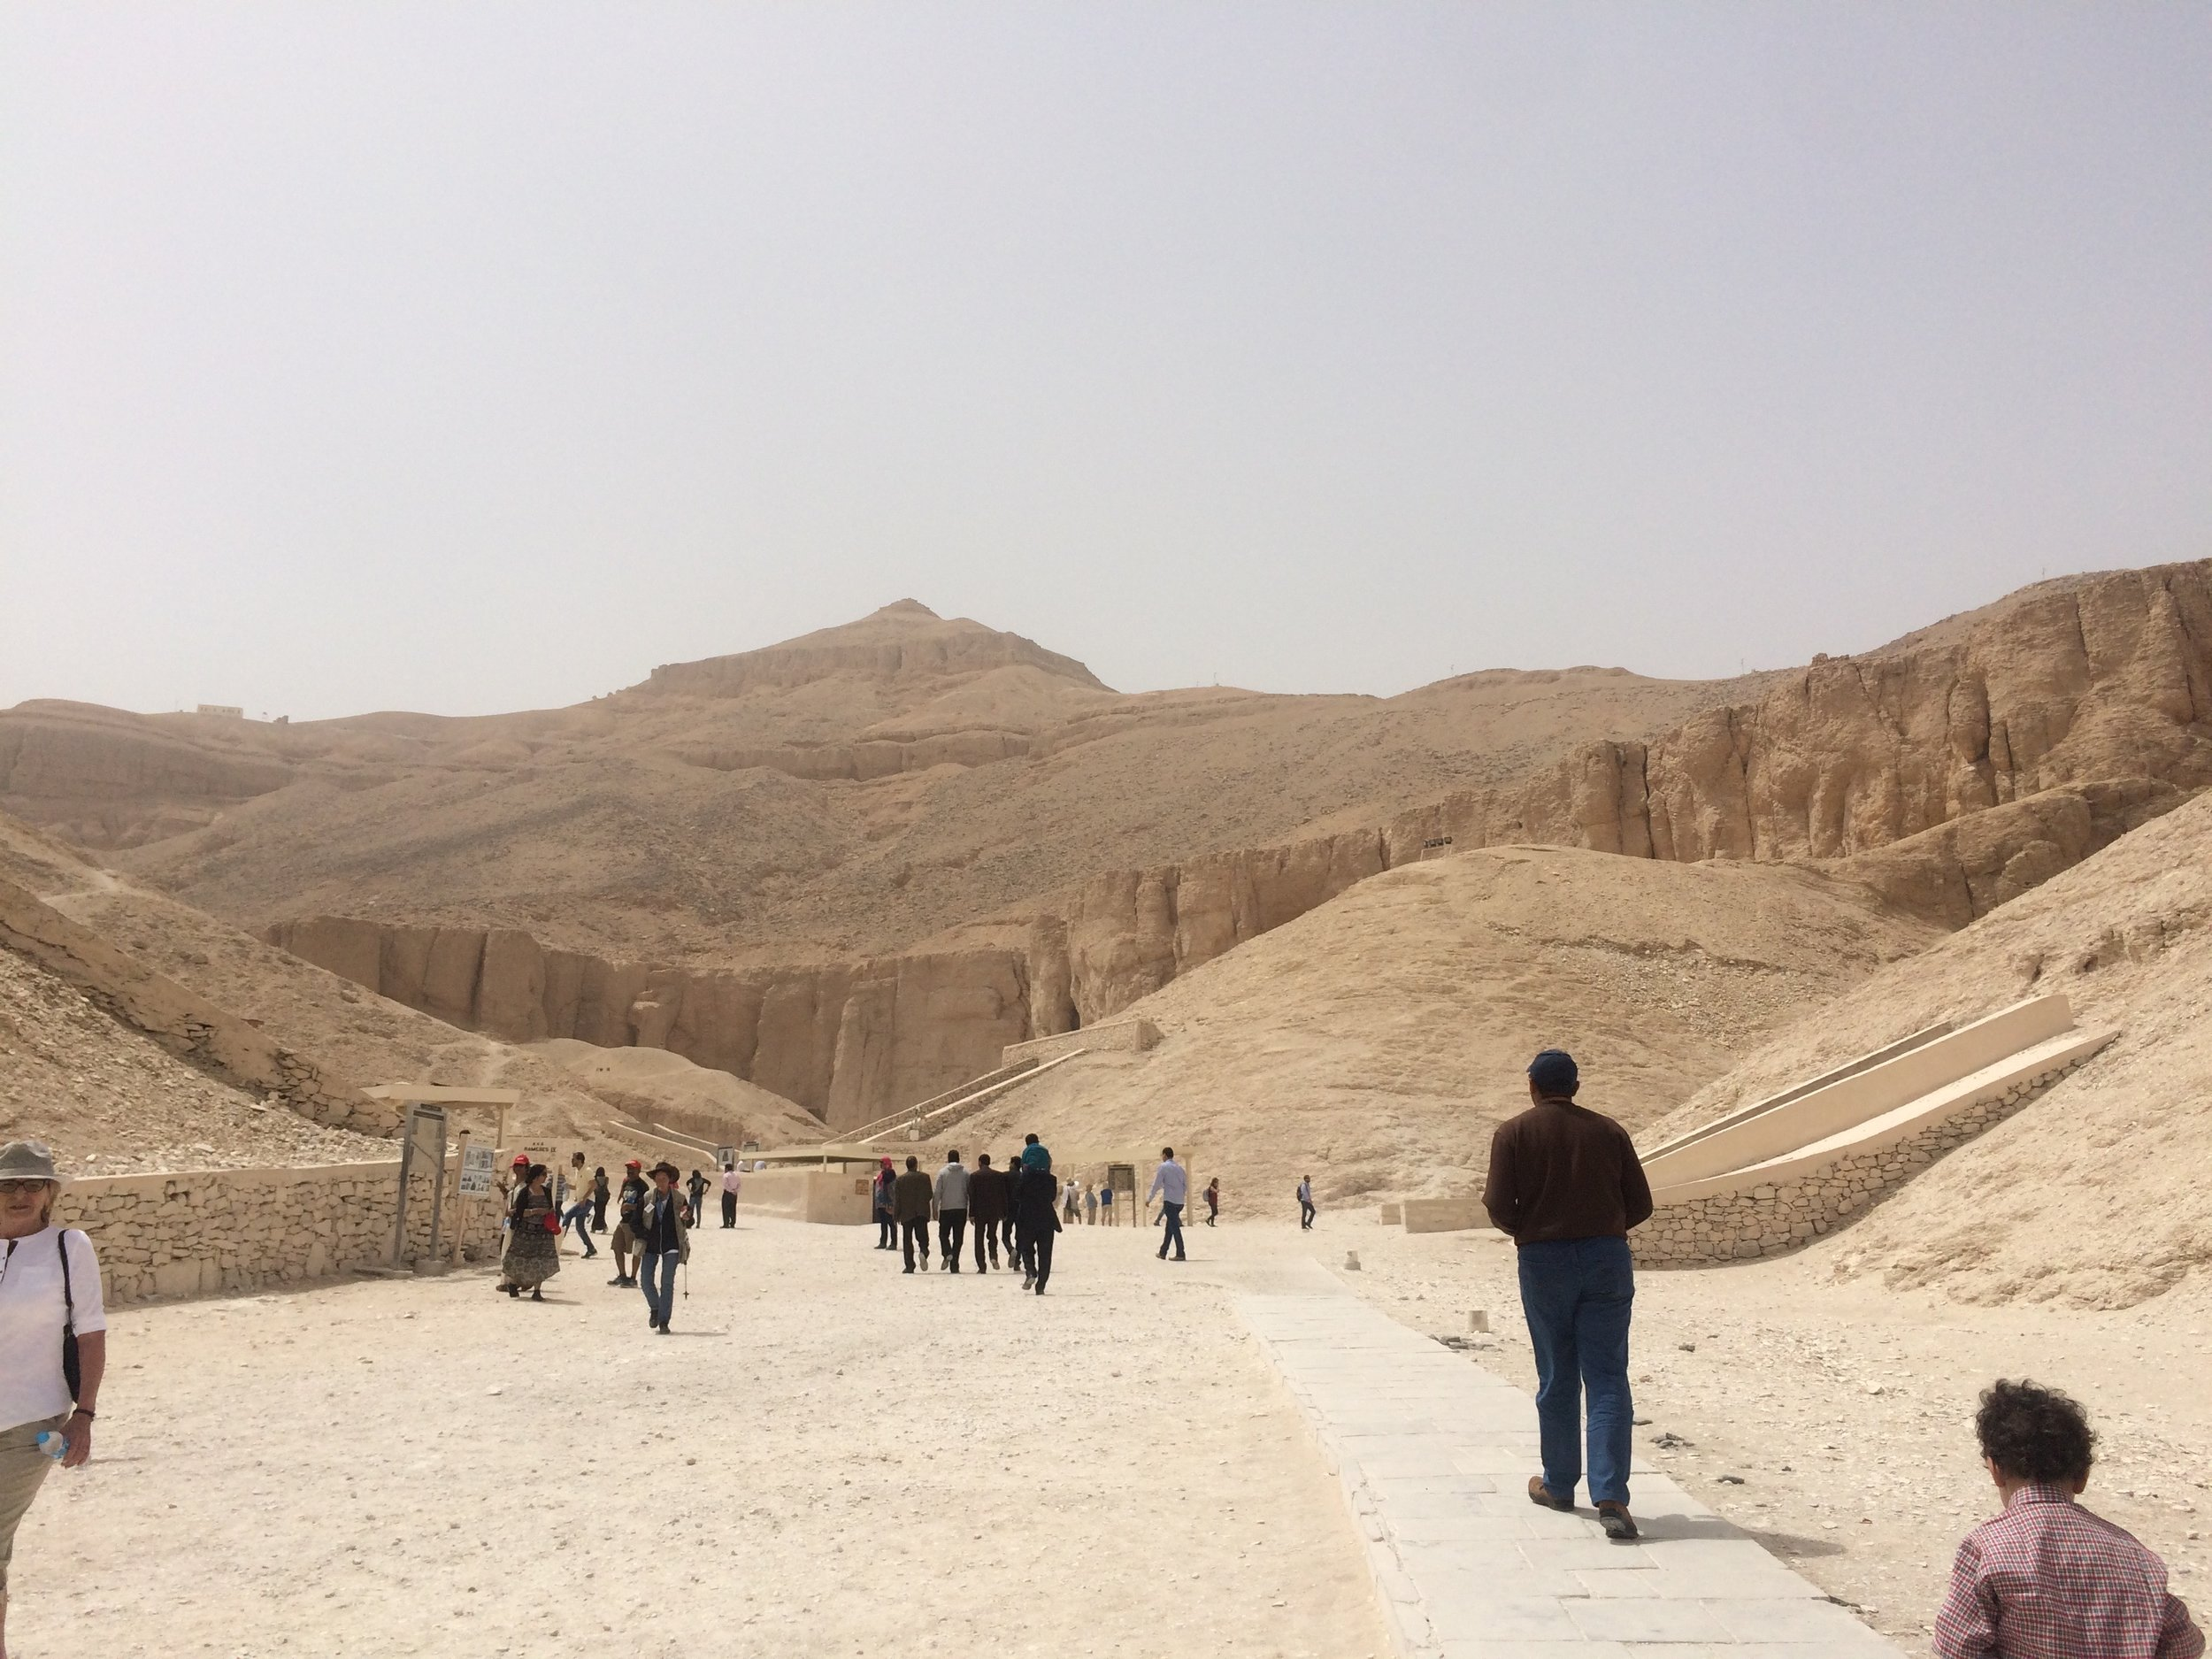 View up the Valley of the Kings